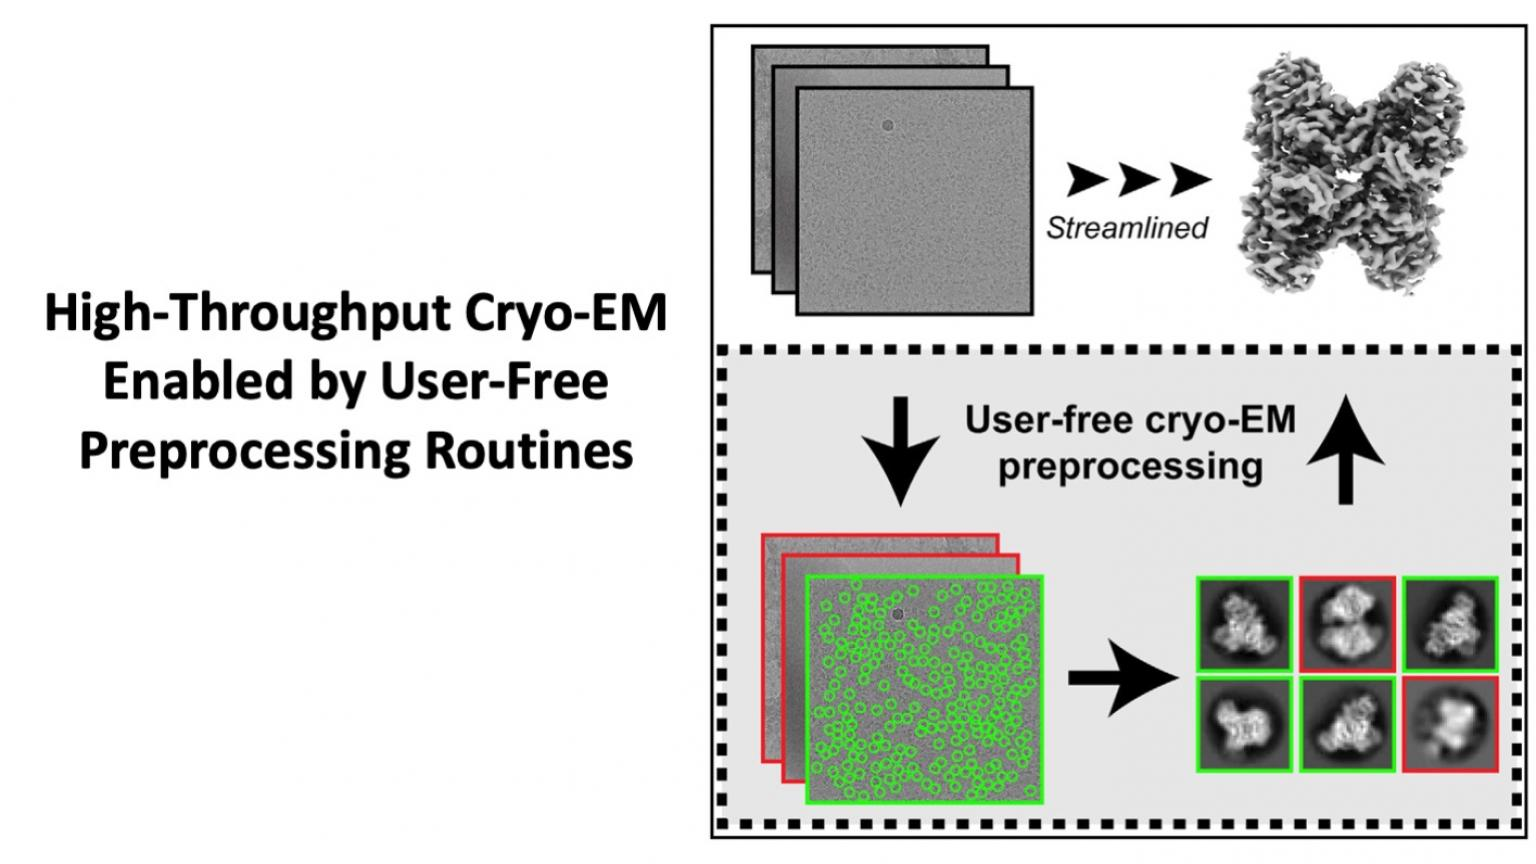 High-throughput cryo-EM enabled by user-free preprocessing routines